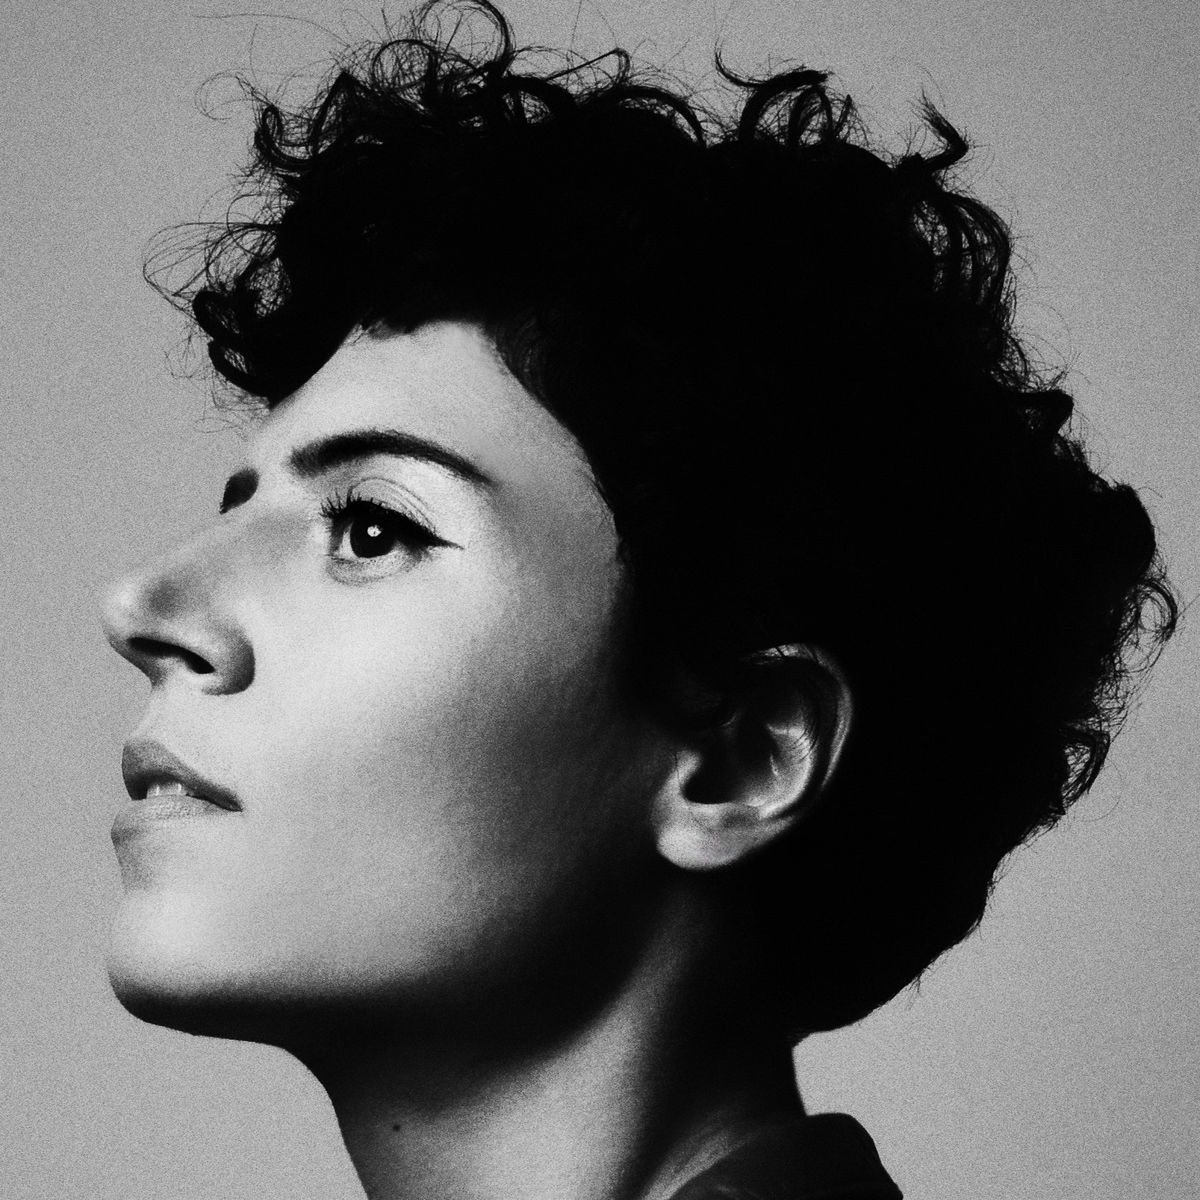 With a calm mix of jazz greats like Sarah Vaughn, the breezy R&B pop stylings of the xx and Sade and the songwriting consciousness of a young Joni Mitchell, Emily King has become a Queen of new indie.